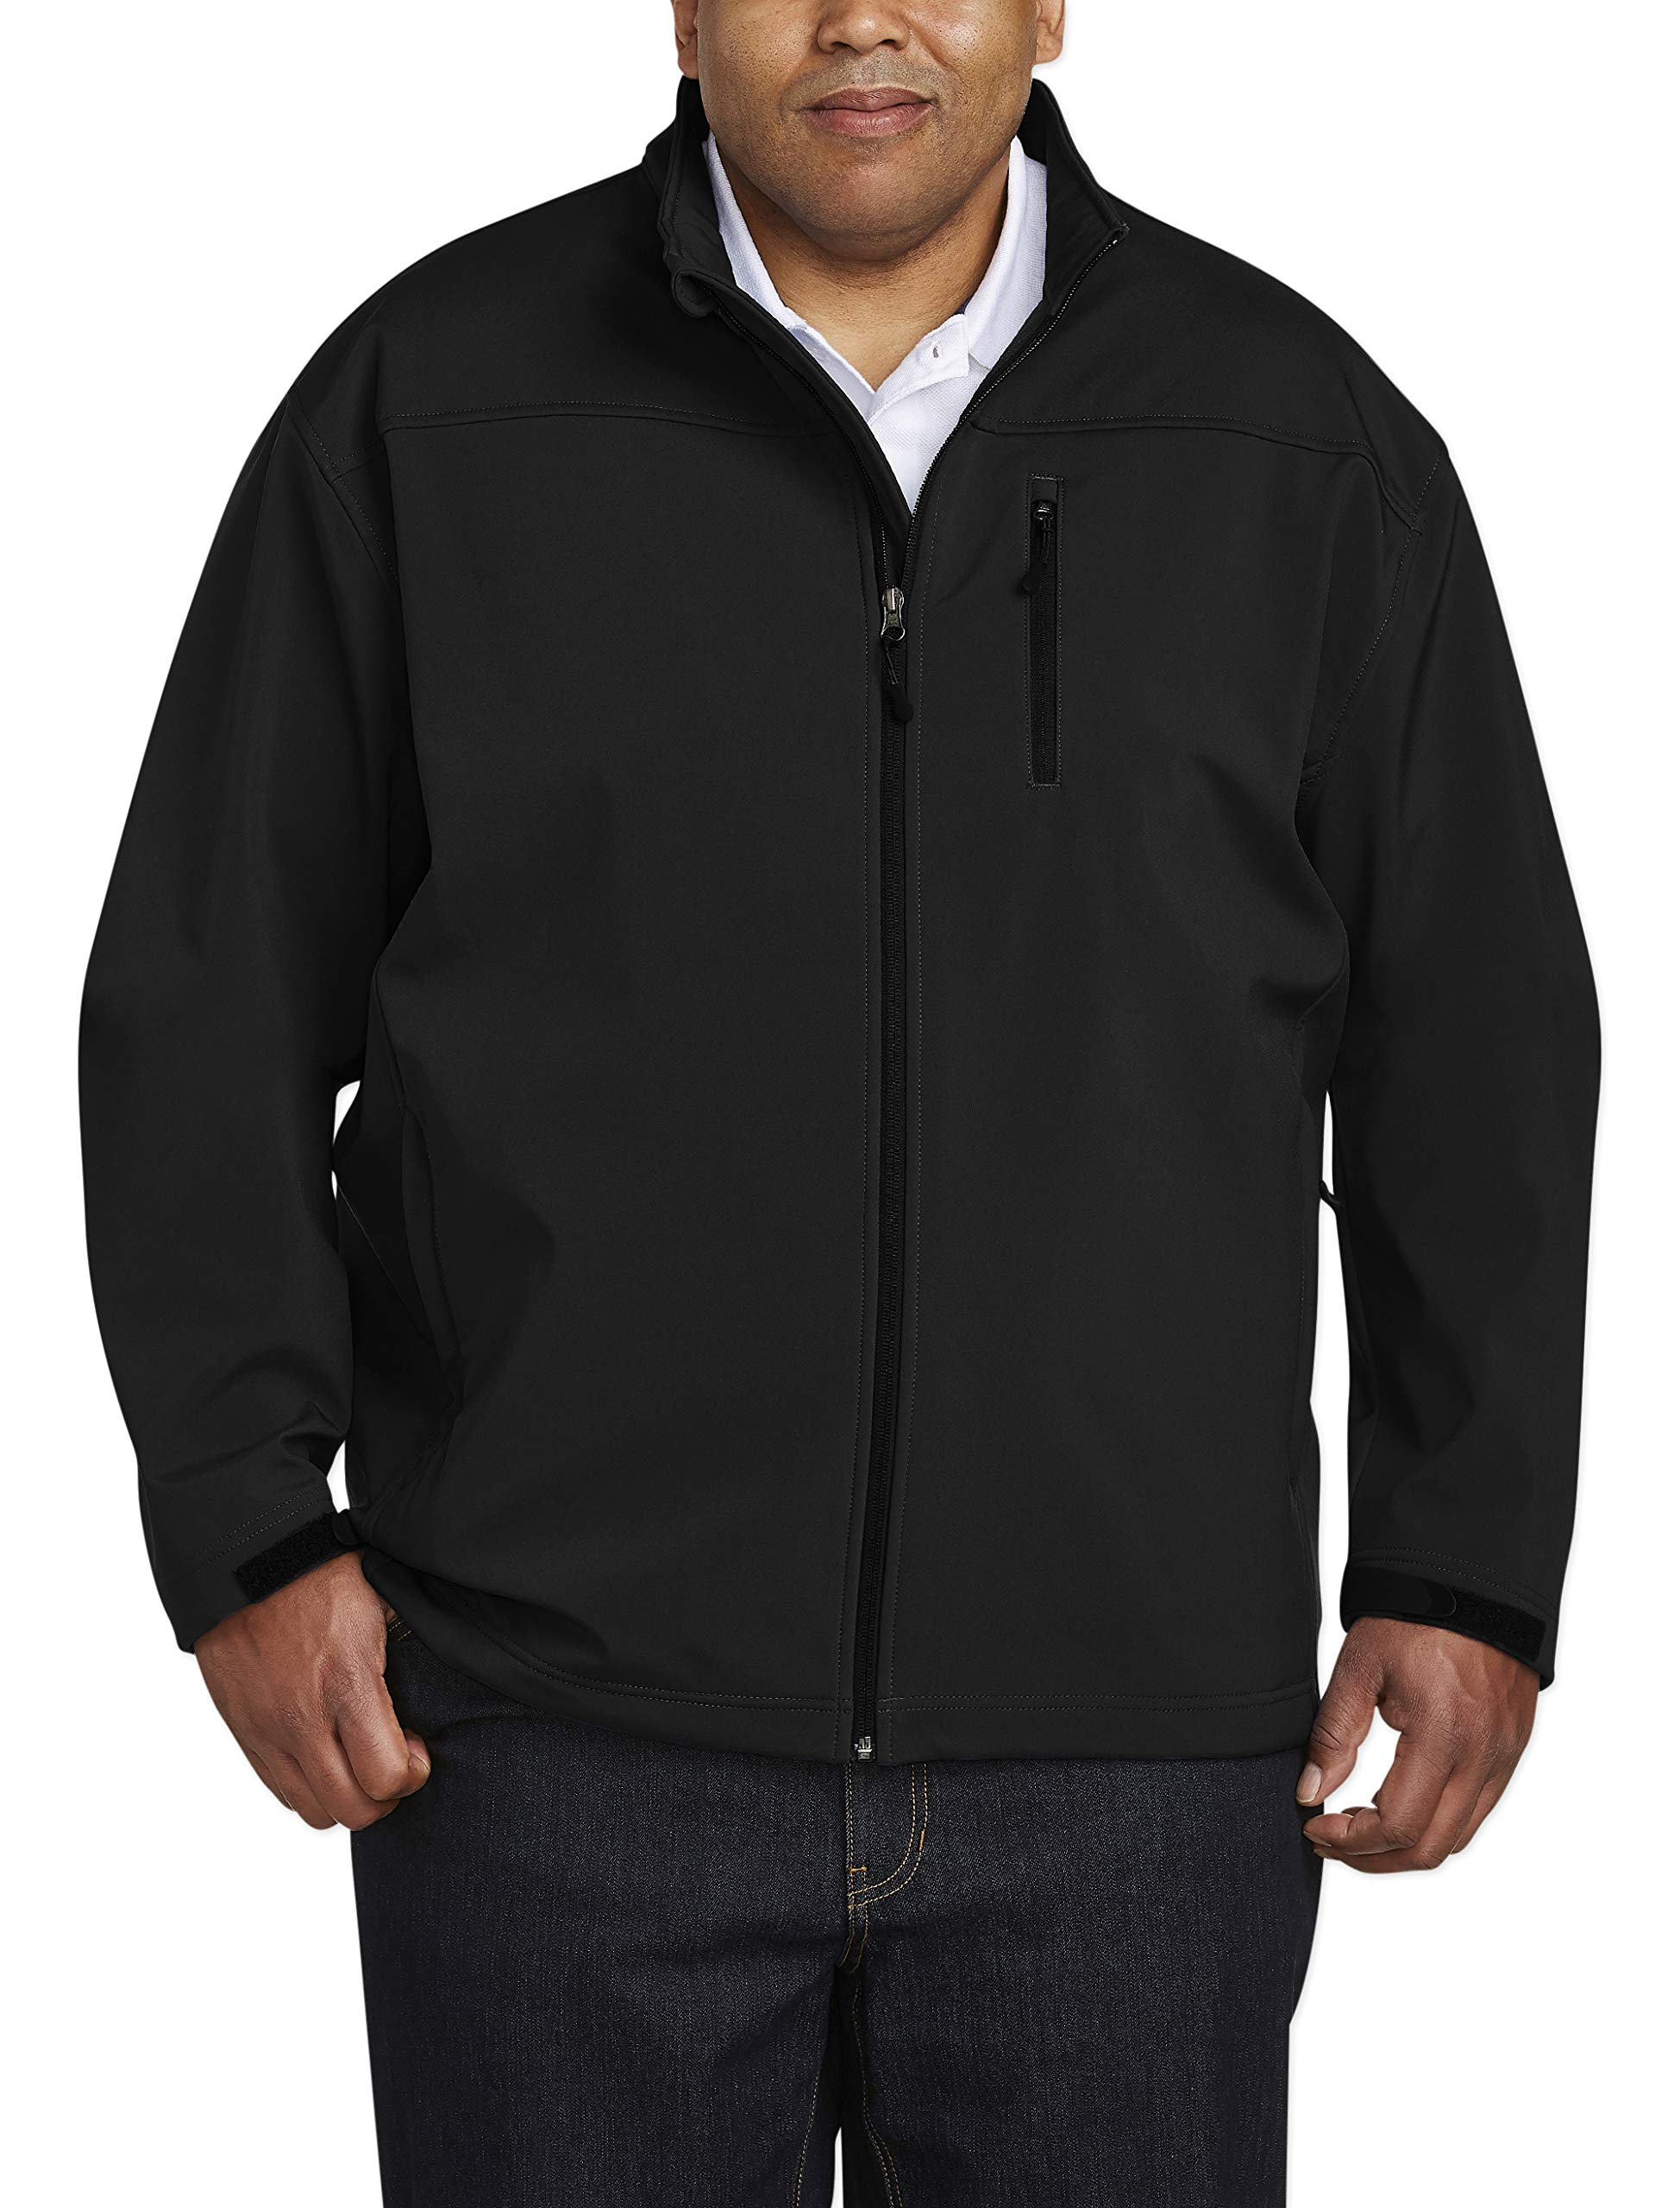 Amazon Essentials Men's Big & Tall Water-Resistant Softshell Jacket fit by DXL, Black, 2X